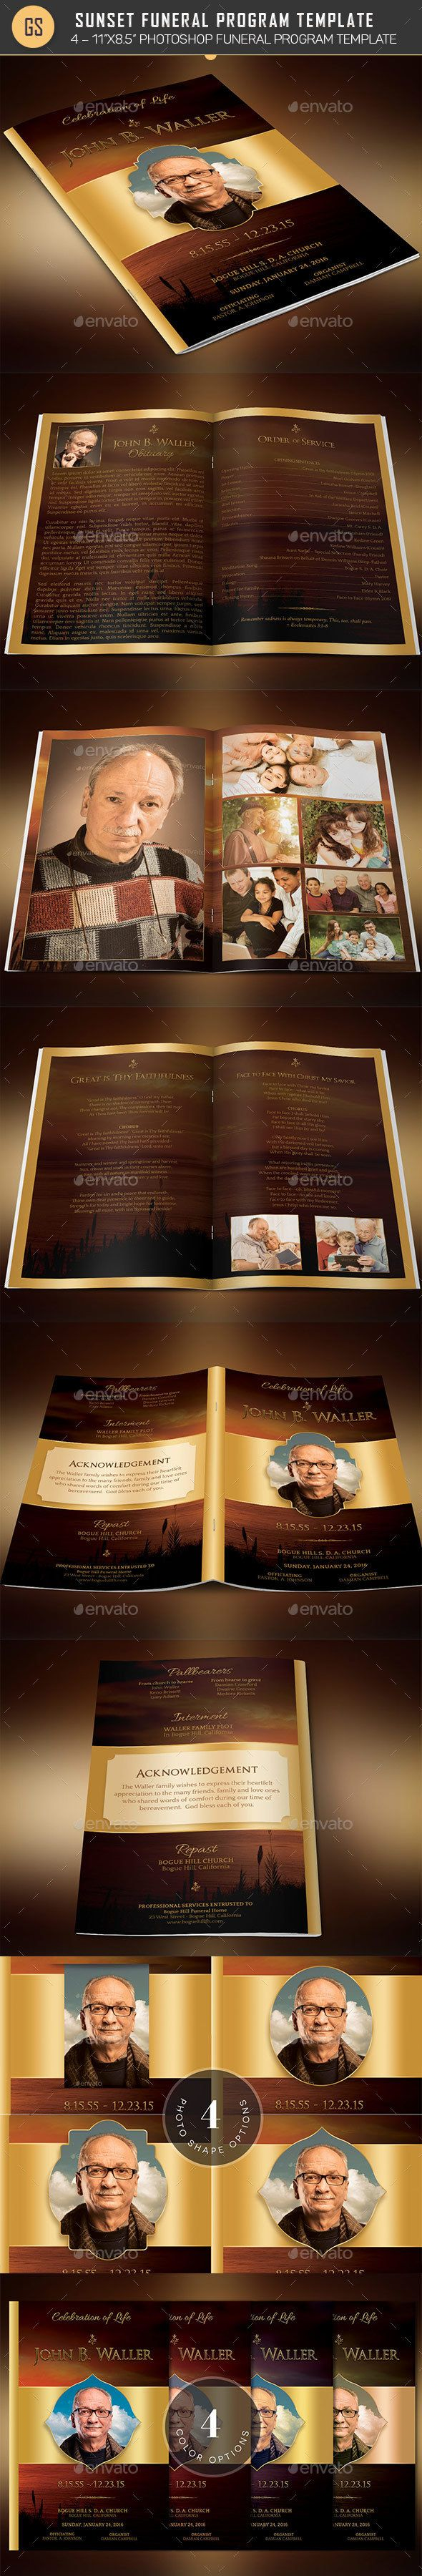 30 best top funeral program template designs images on pinterest